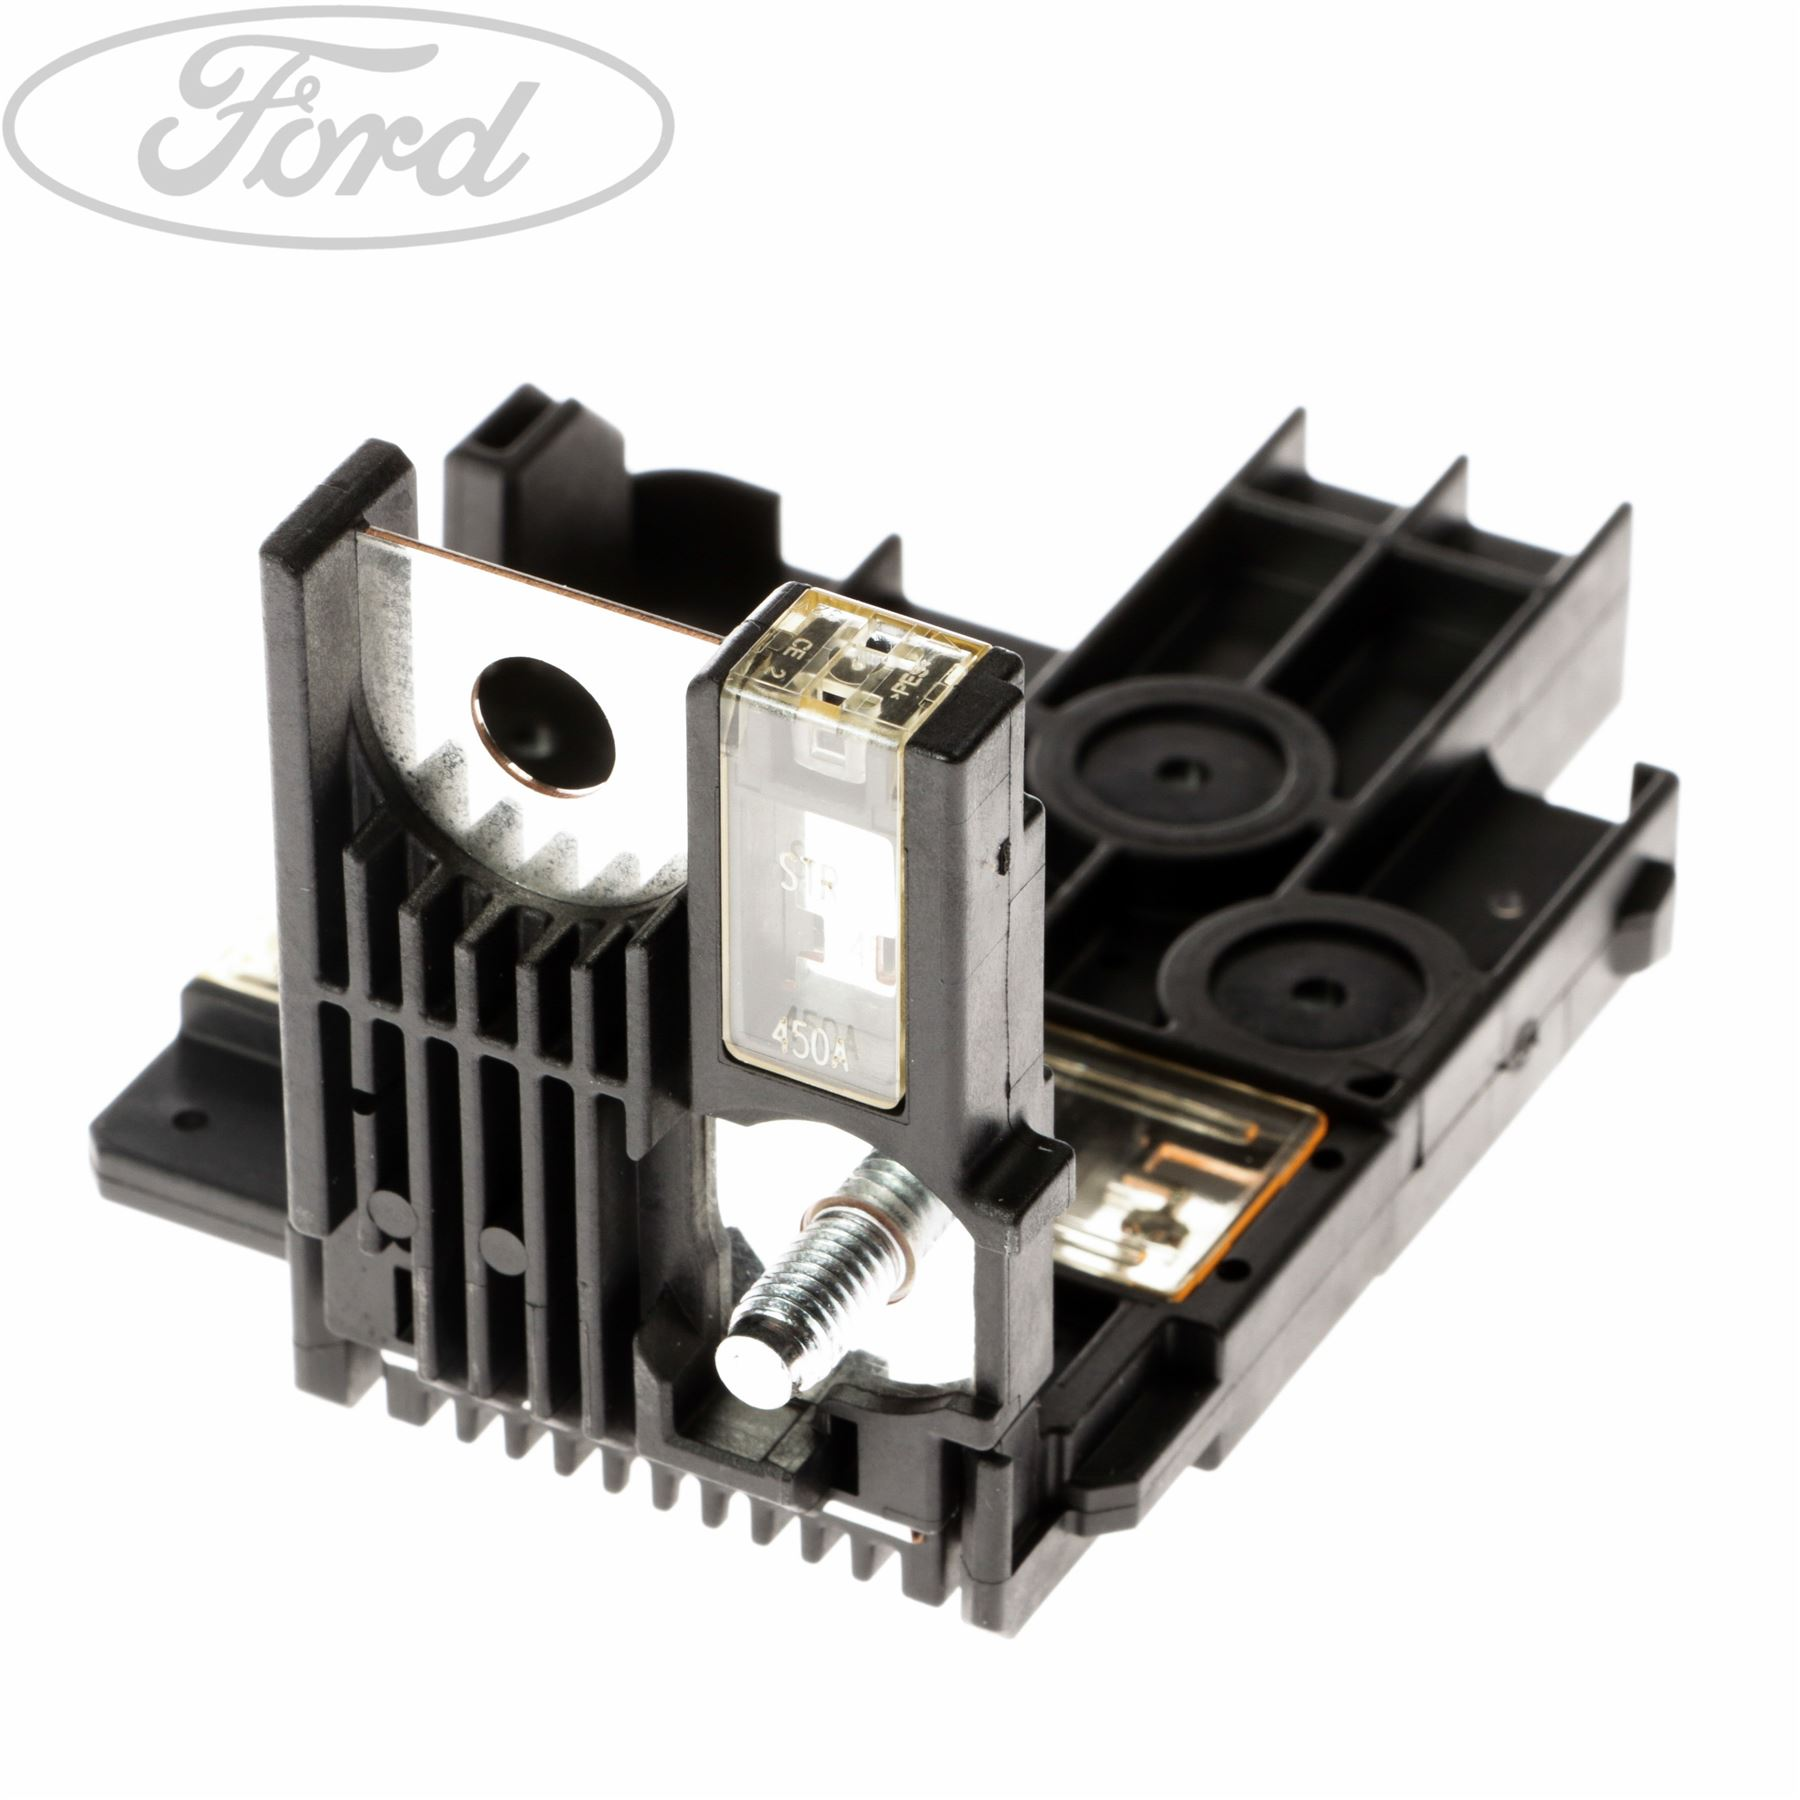 hight resolution of details about genuine ford fiesta mk7 fuse junction panel 1520976